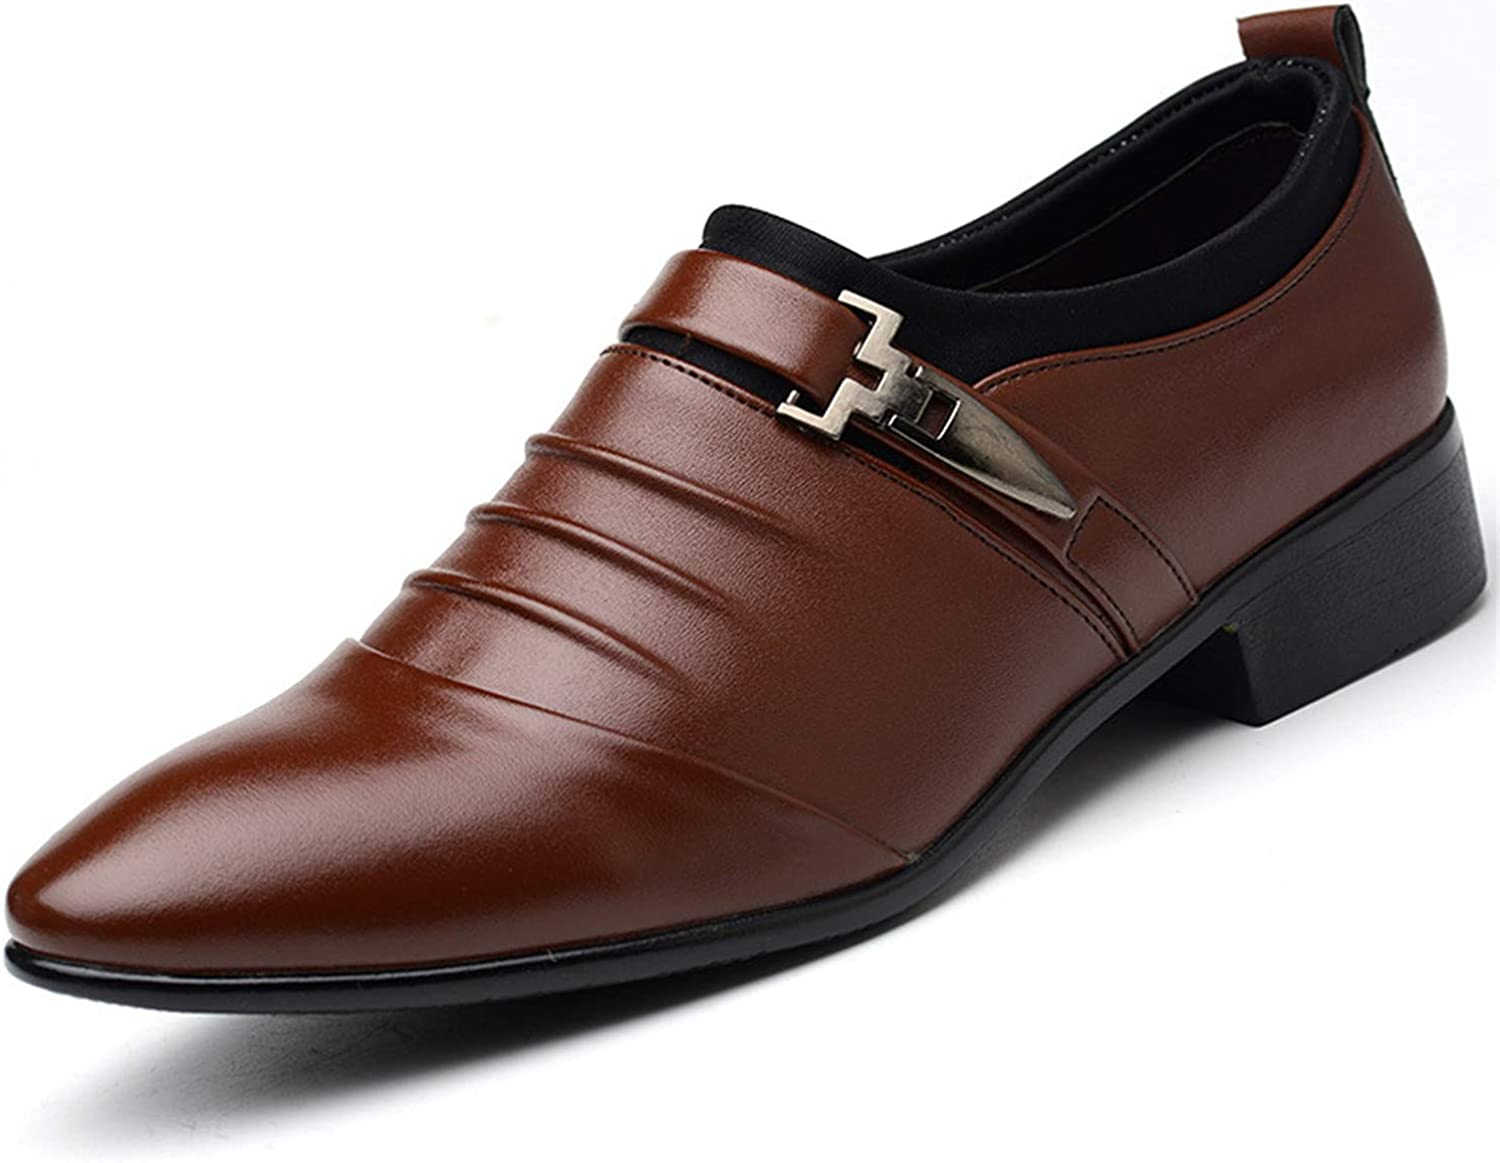 Elegant Oxford Shoes for Mens Shoes Men Formal Shoes Leather Loafers